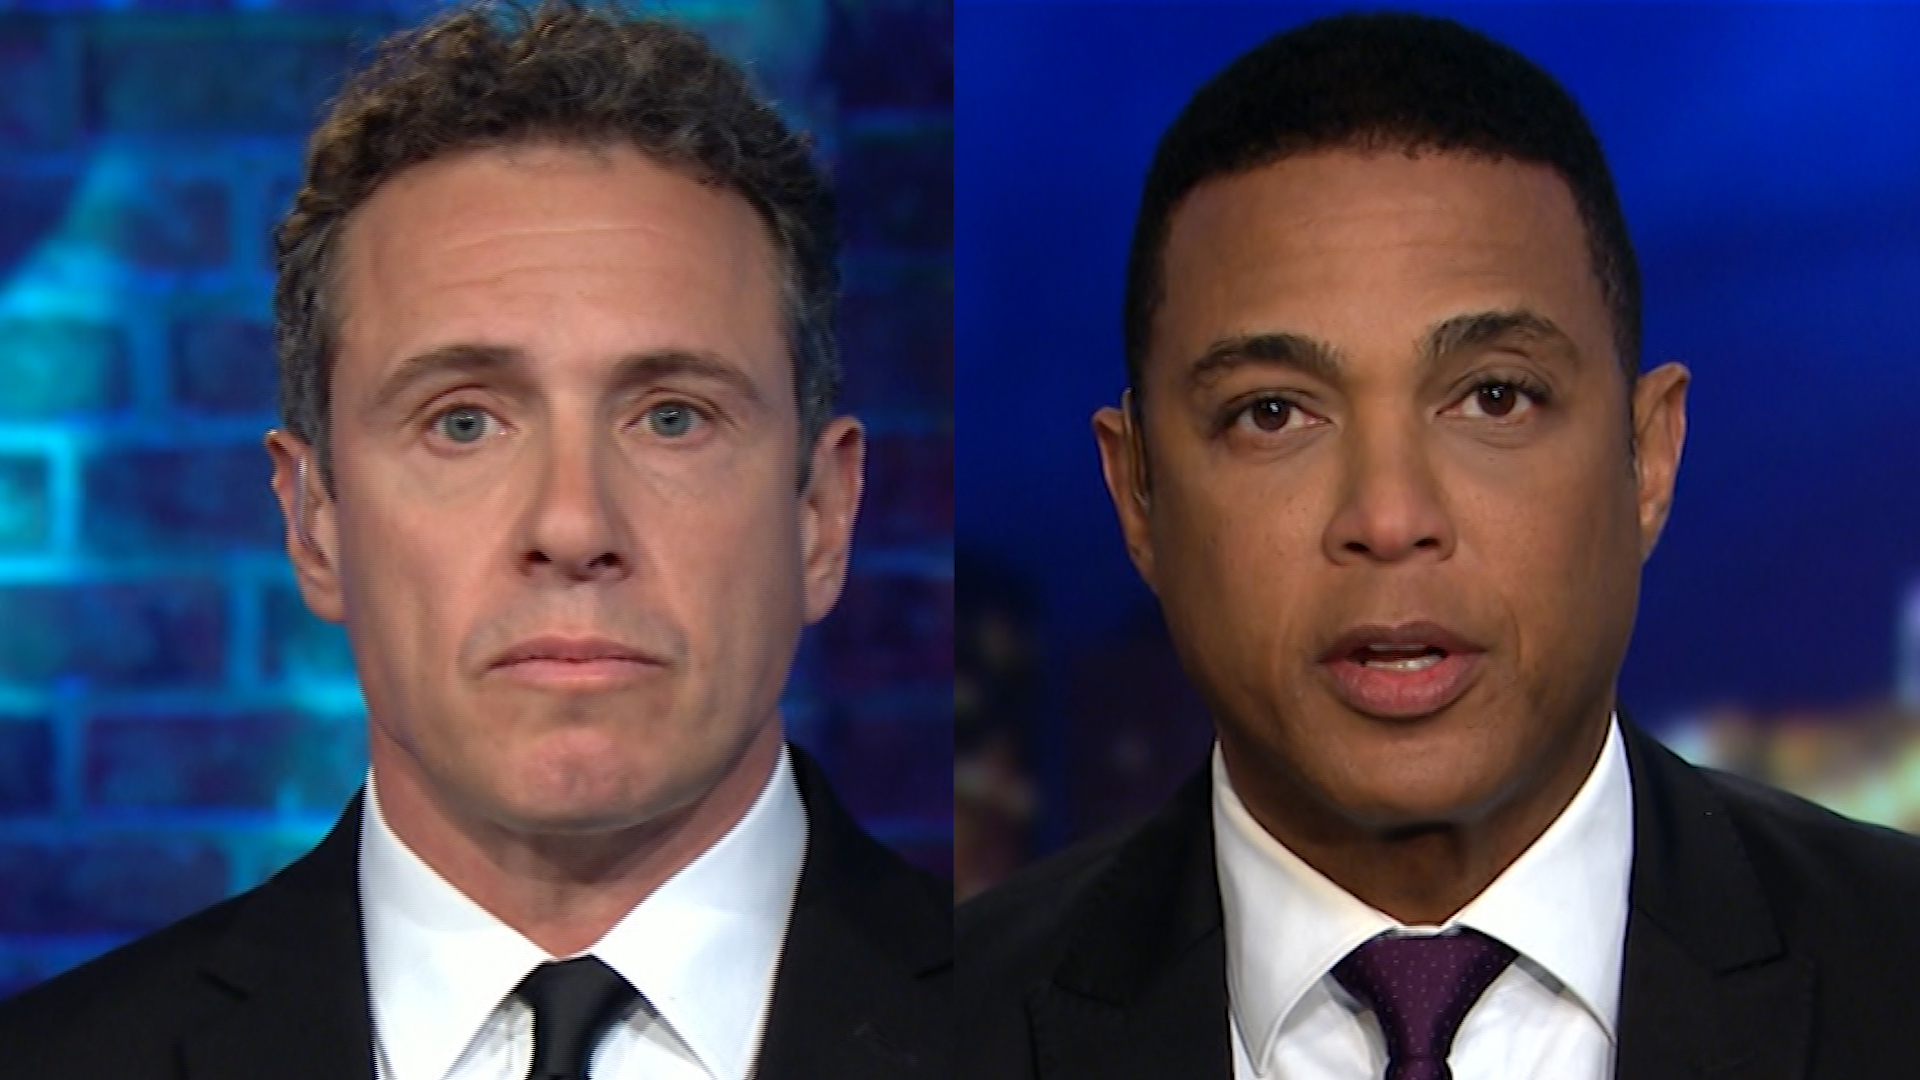 Chris Cuomo And Don Lemon Fact Checking Donald Trump Is Exhausting